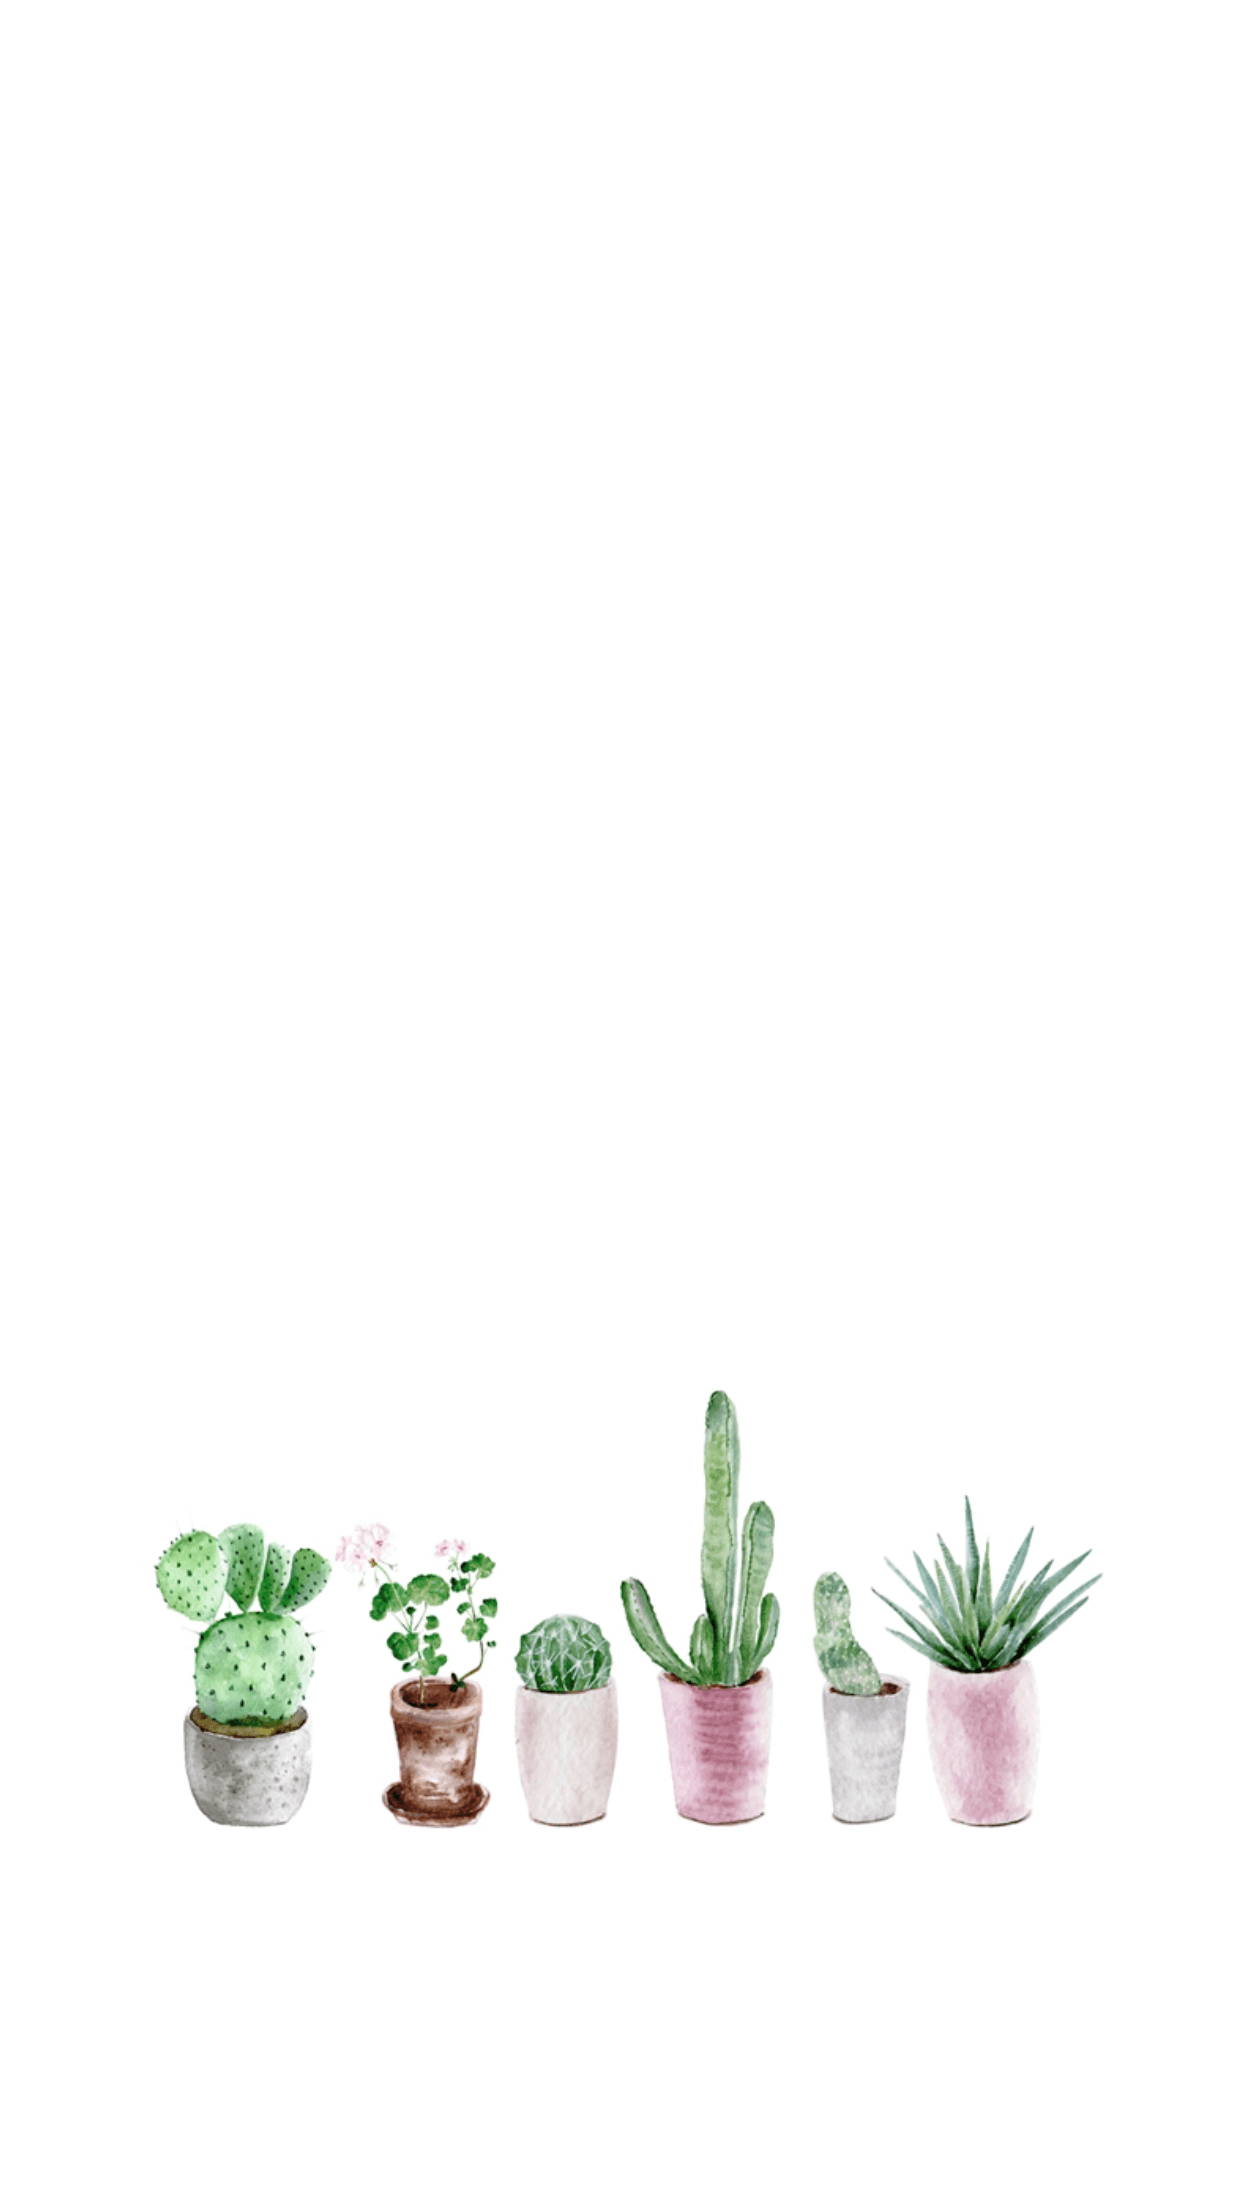 Aesthetic Cactus Wallpaper : aesthetic, cactus, wallpaper, Aesthetic, Cactus, Wallpapers, Backgrounds, WallpaperAccess